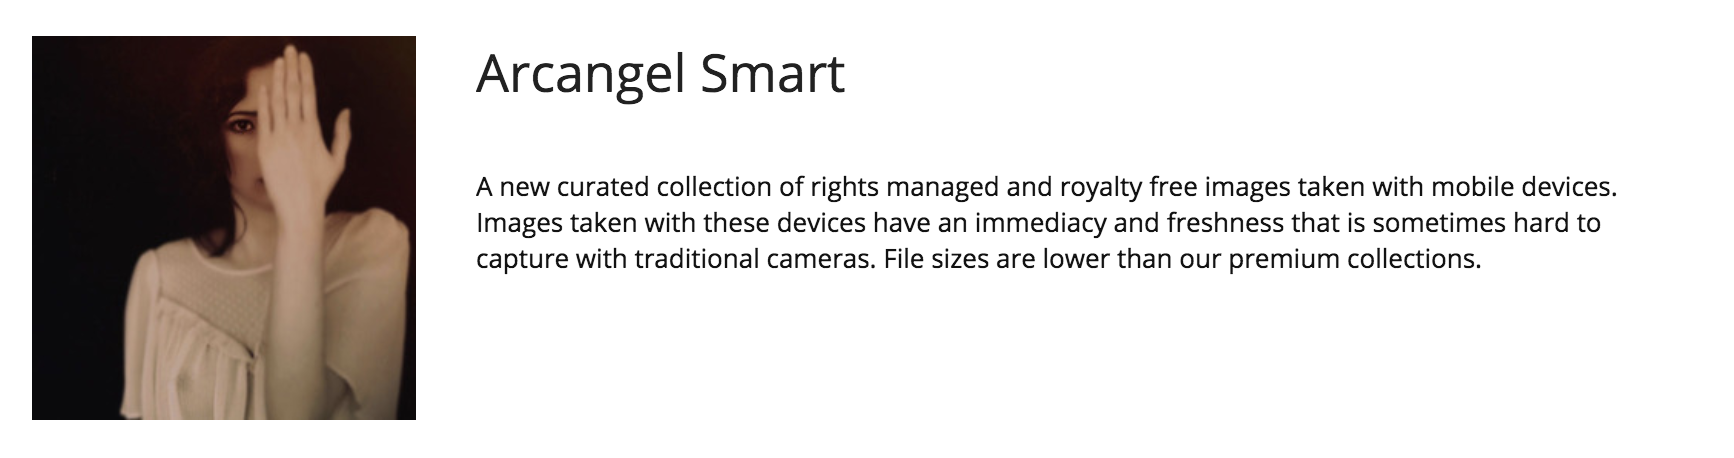 arcangel-smart-collection.png